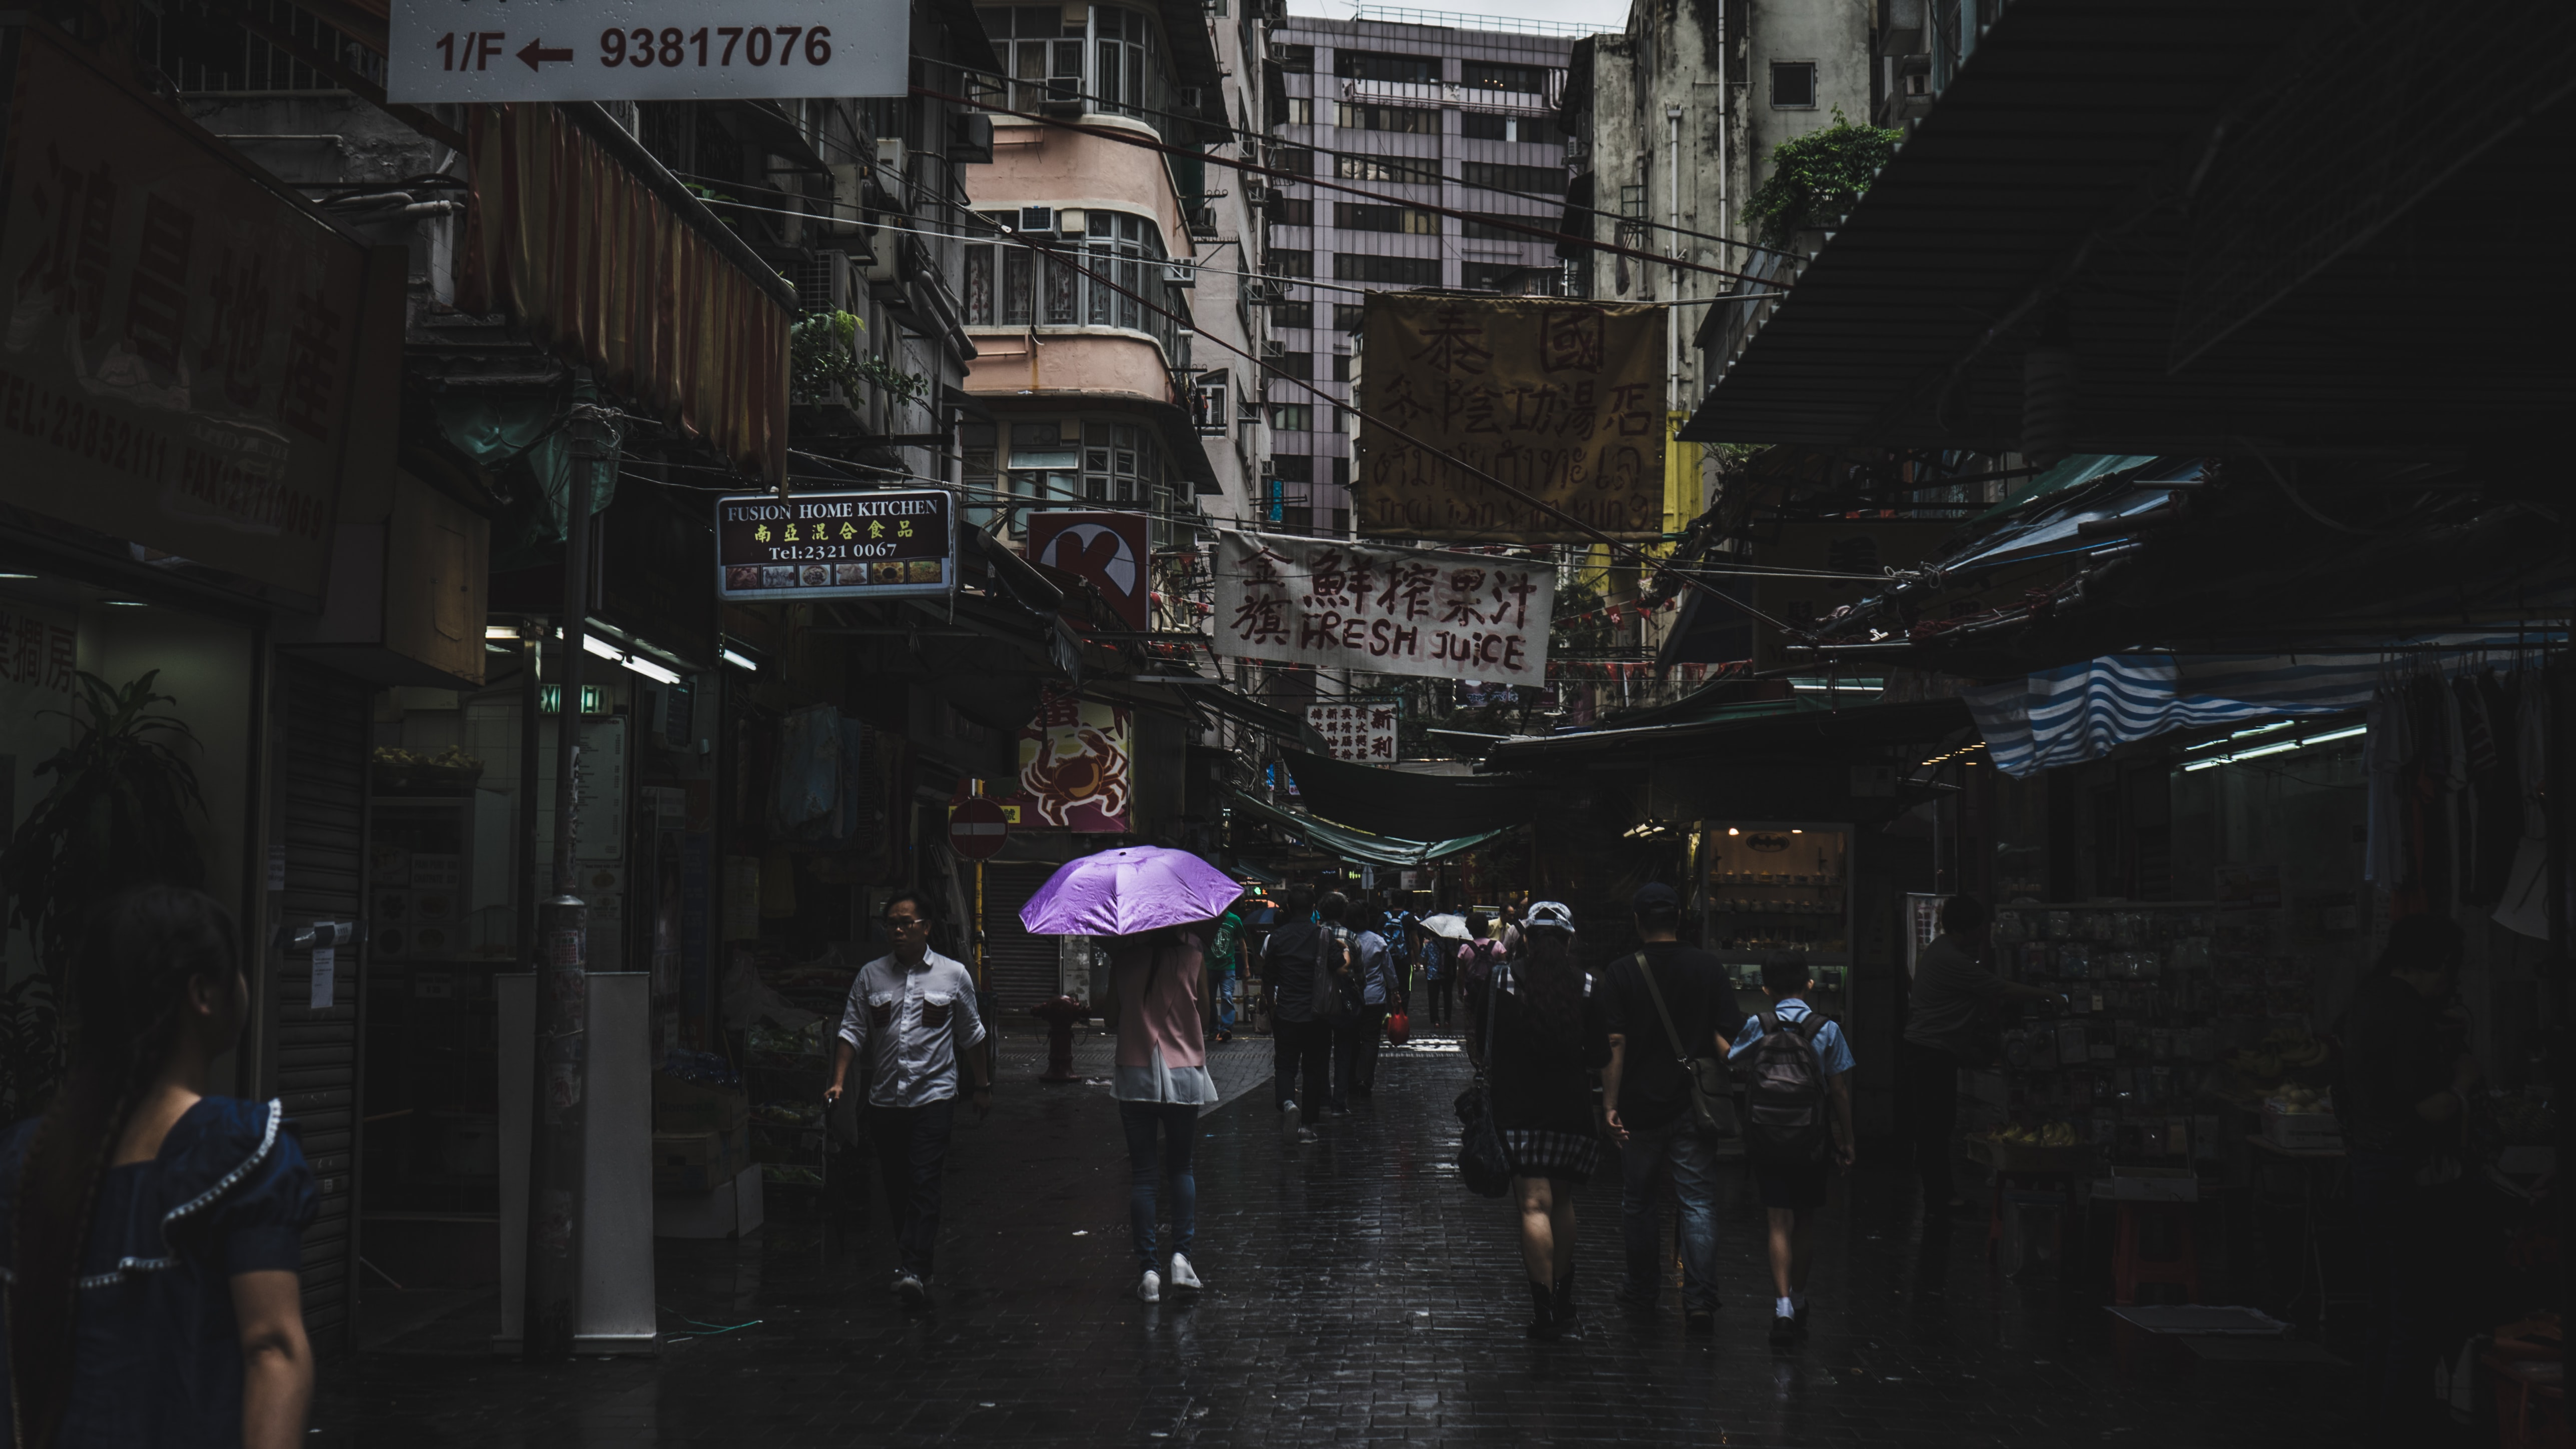 People walking in a narrow alley in Kowloon on a rainy day